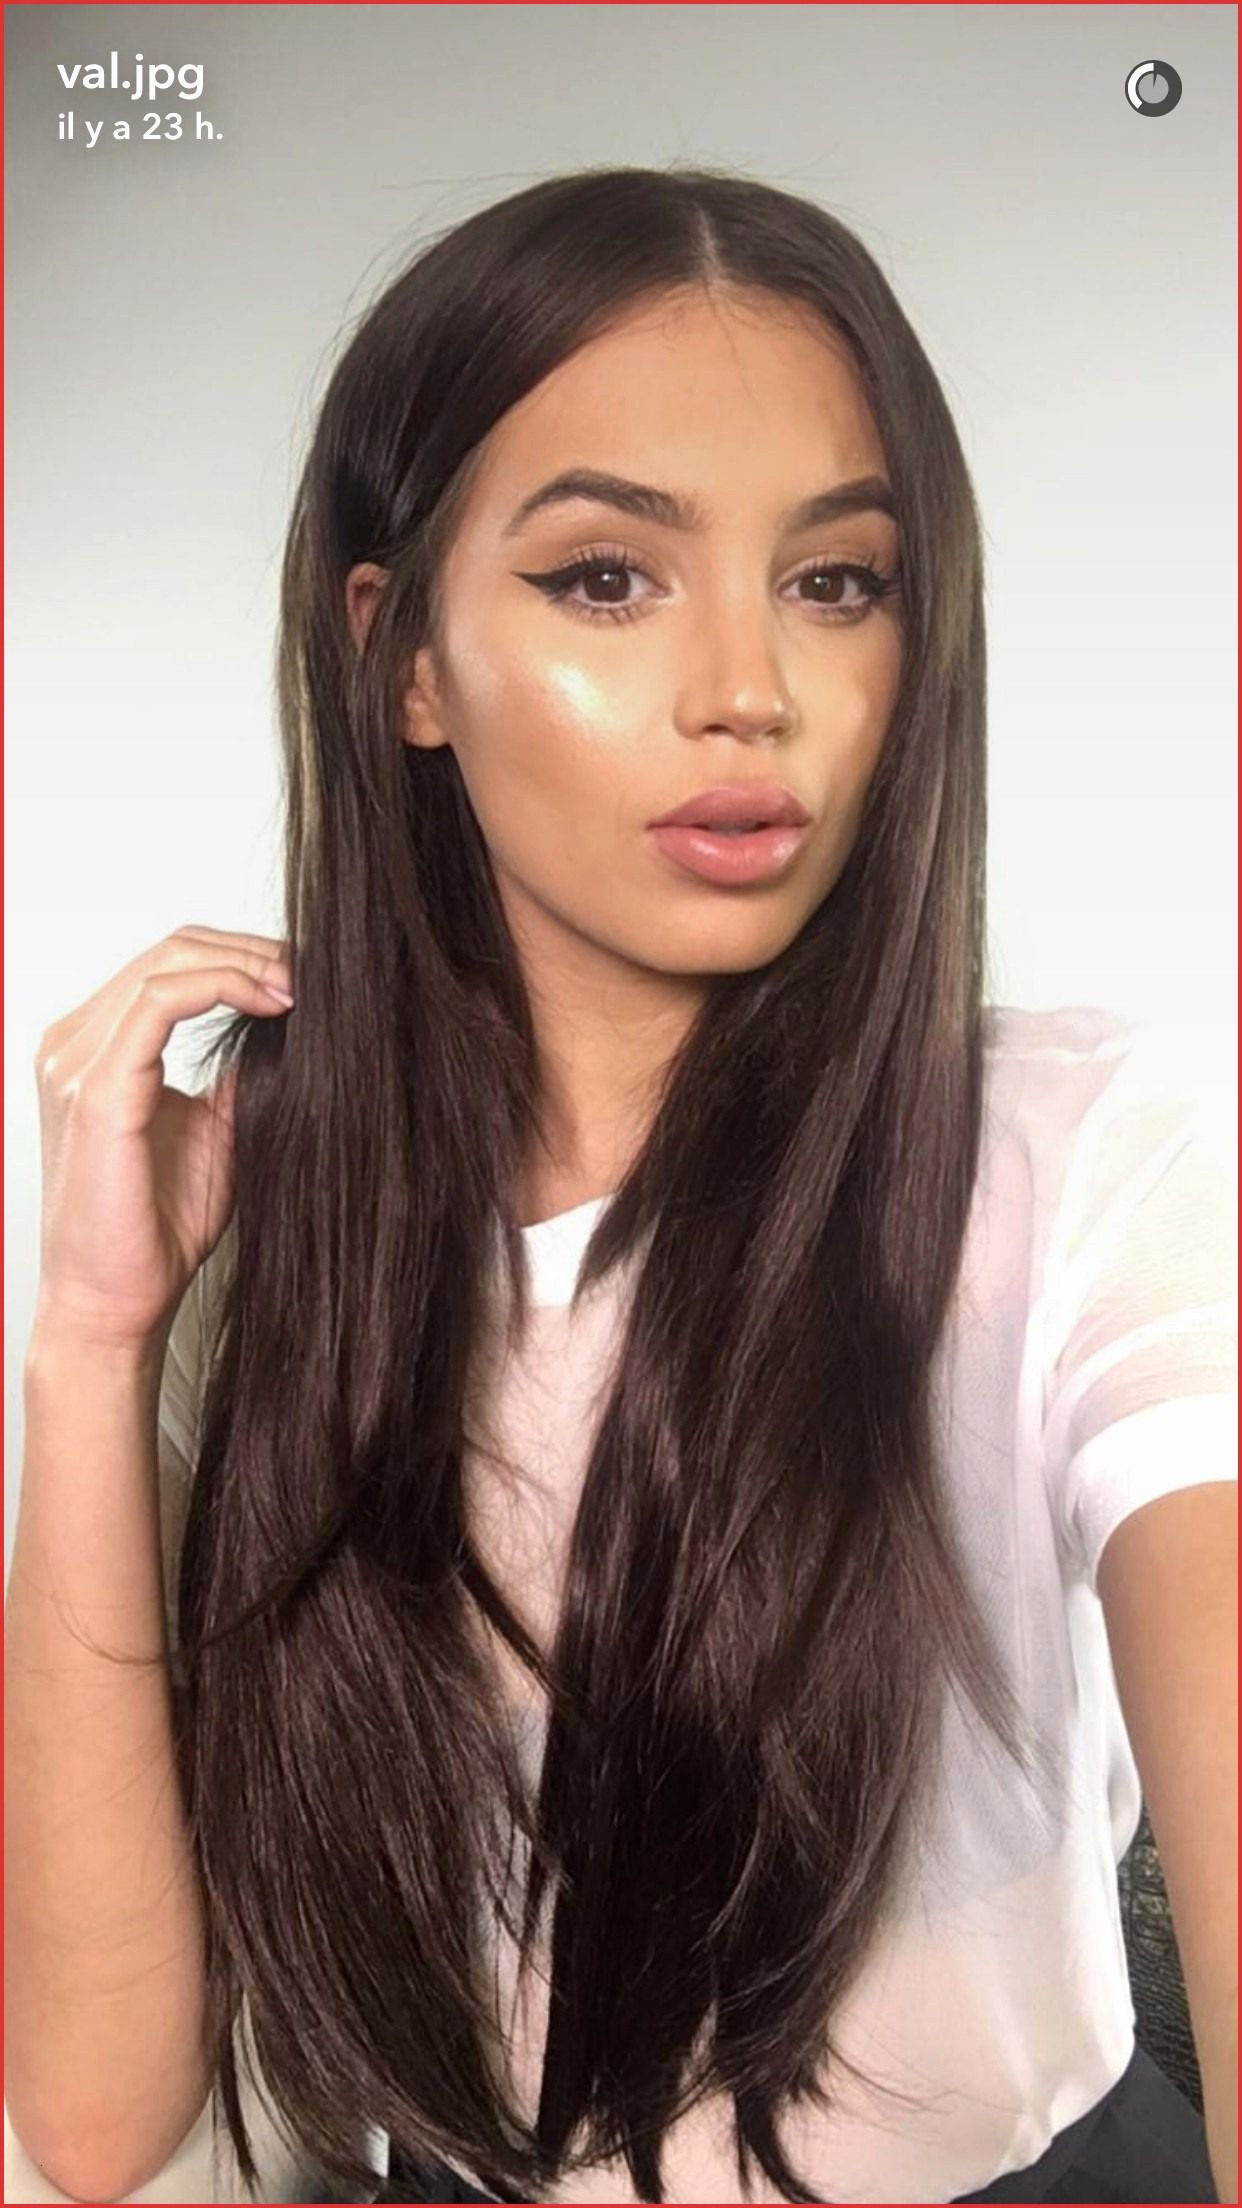 Mix Girl Hairstyles 128260 Puerto Rican American Singers Long Hair Styles Medium Hair Styles Hair Styles